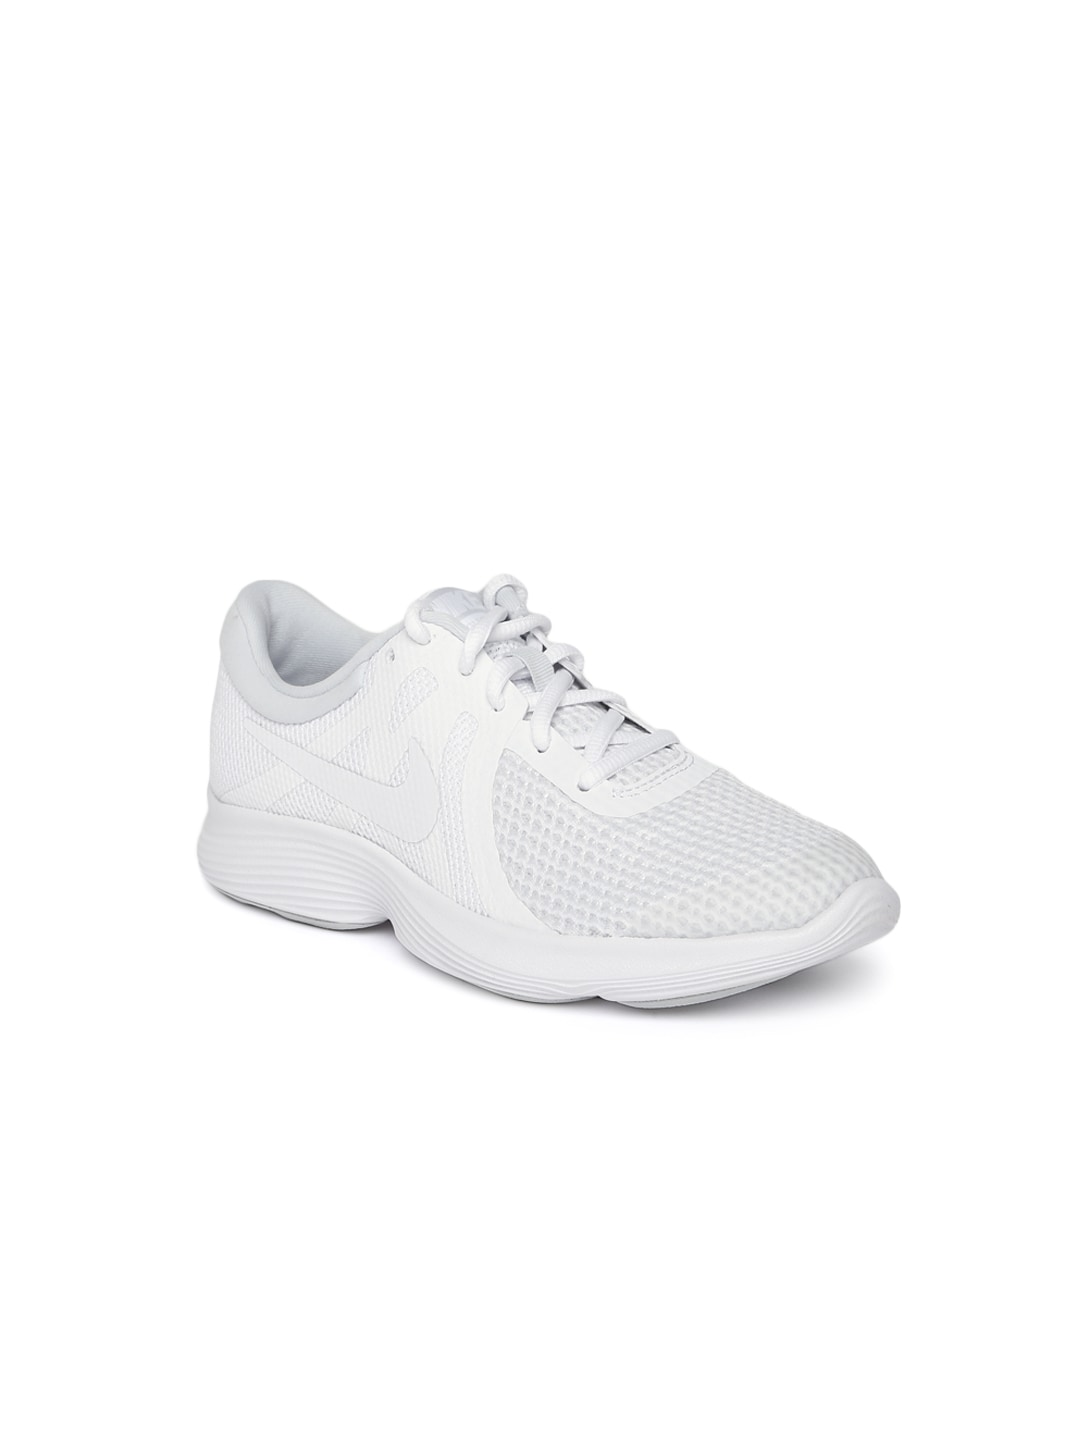 a7532ad8ee4 White Sports Shoes - Buy White Sports